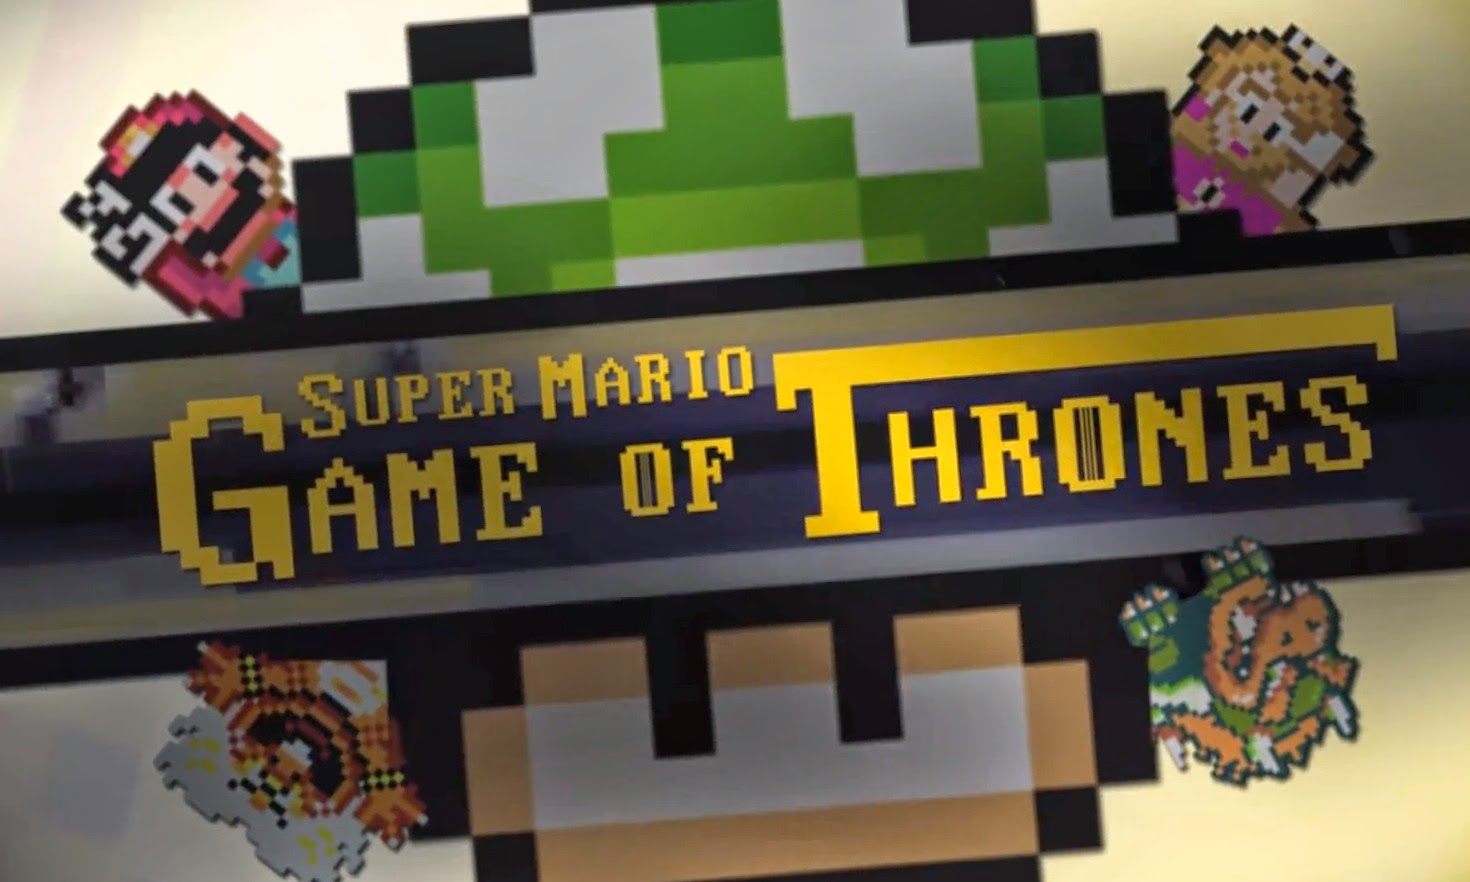 Super Mario World Game of Thrones Theme Full Song Download Link